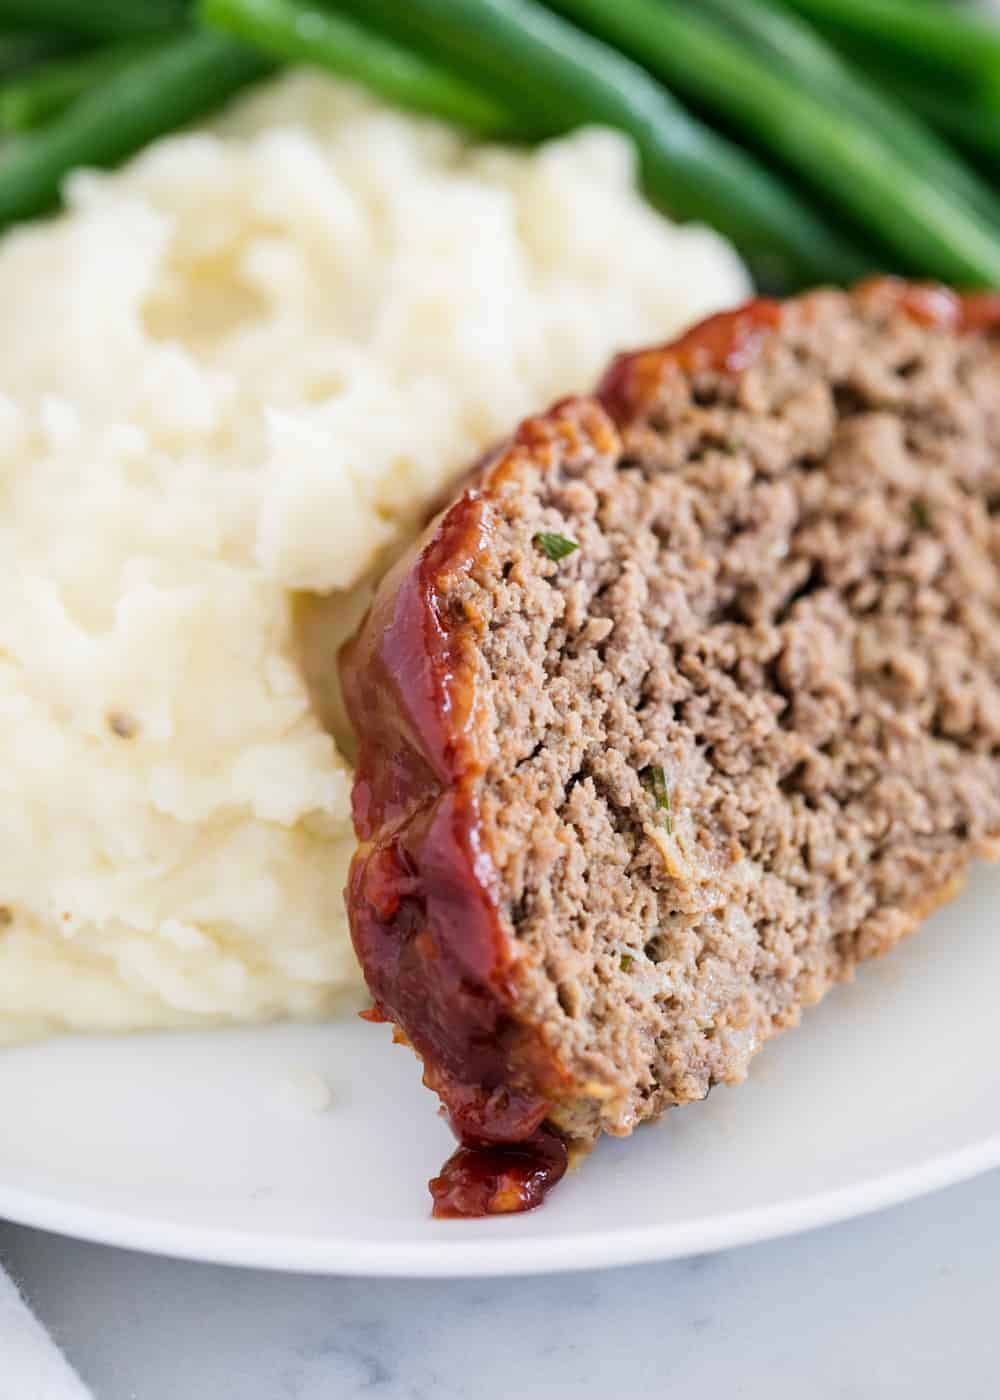 EASY HOMEMADE MEATLOAF RECIPE I HEART NAPTIME